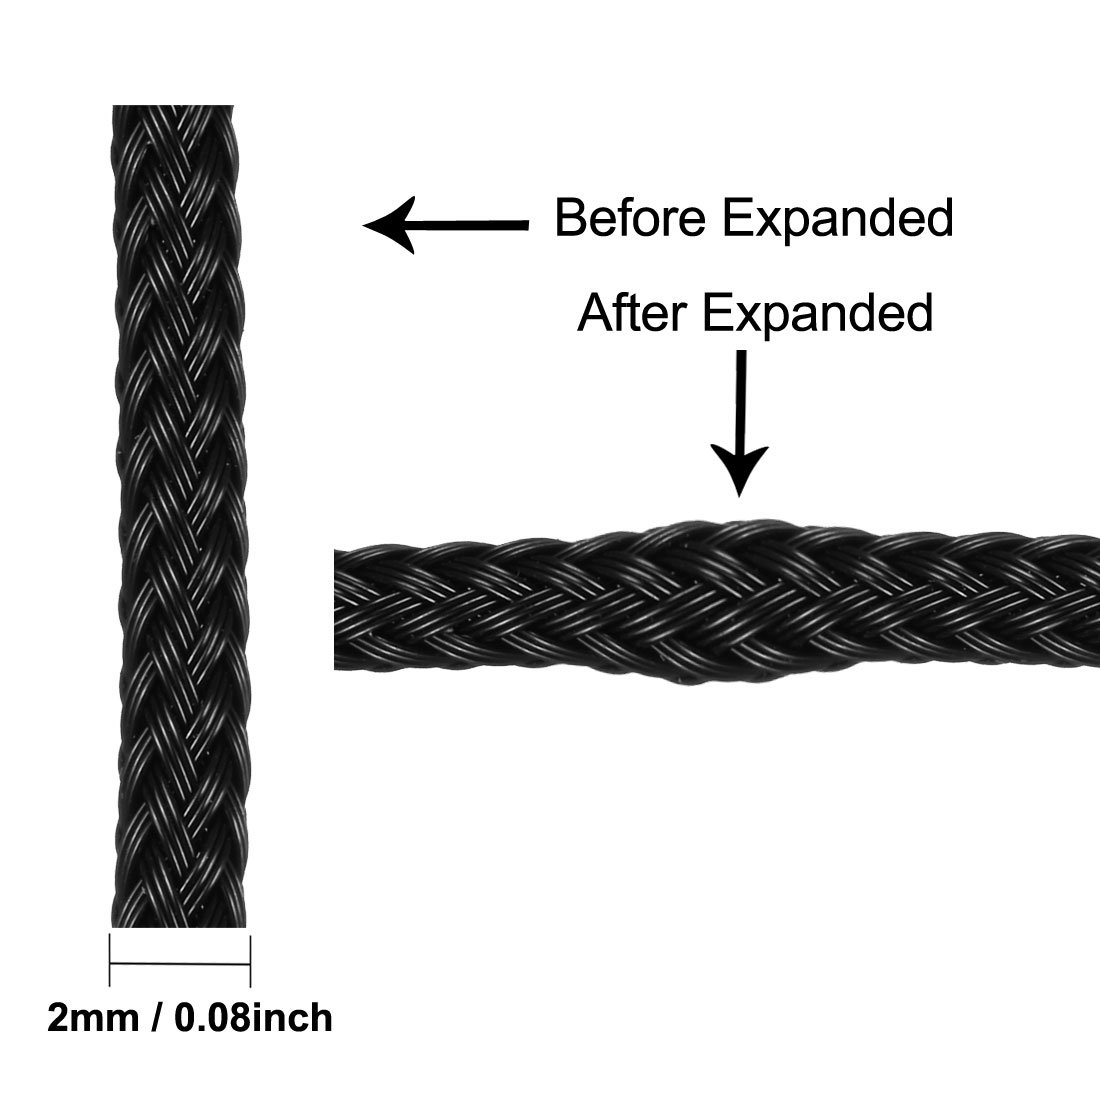 uxcell 3 Meters PET Sleeving Expandable Braided 9.84ft 4mm Dia Cable Management Sleeve Cord Organizer Black